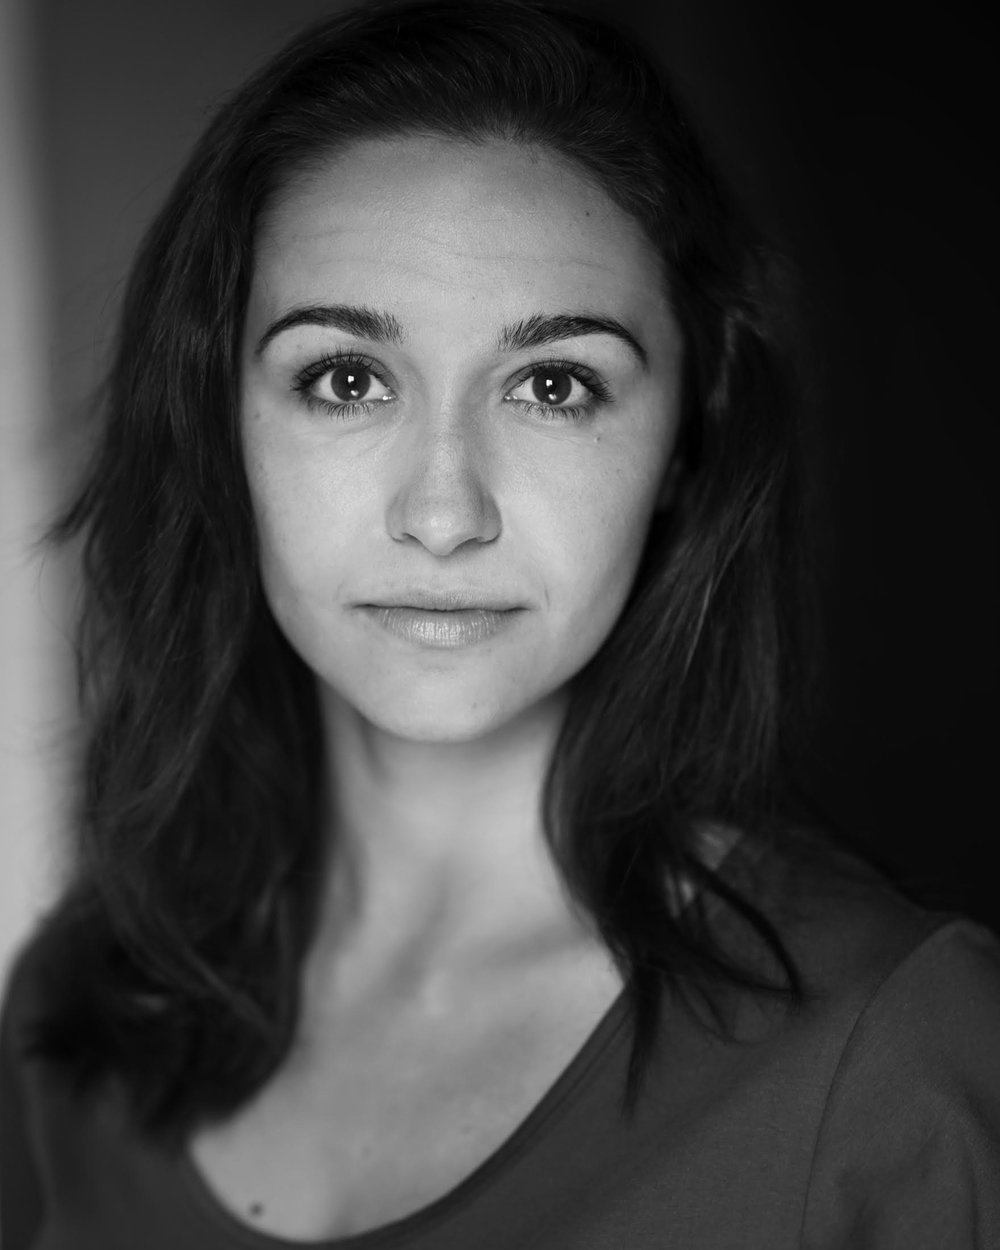 Radina Dradnova Born in Bulgaria, graduated from the National Academy for Theatre and film Arts (NATFA) in Sofia (2009 - 2014). BA degree in Physical Theatre. Graduated from the Royal Central School of Speech and Drama (MA Acting for Screen) in 2015. Radina recently finished filming the World War 2 short film 'Pitfall' which won the 'Best of Fest' award at the Isle of Man Film Festival. You can also see Radina in the short film 'Dawn of the Deaf' which was in over 100 Film Festivals worldwide, including Sundance Film Festival.  Speaks Bulgarian, English and French and is also a professional singer (trained in Pop and Jazz singing in Bulgaria).